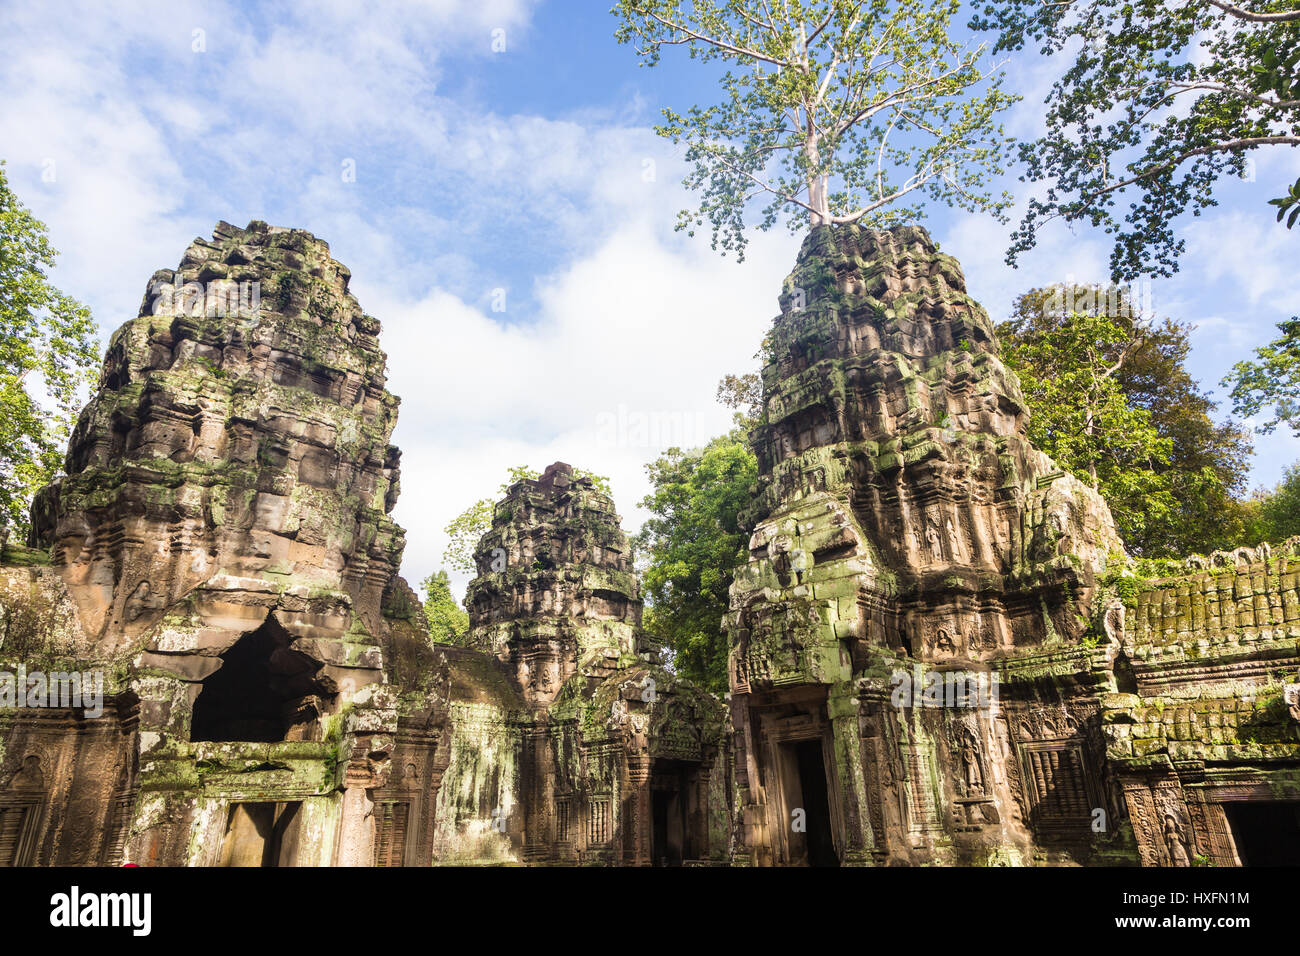 The ruin of the ancient Ta Phrom temple in the Khmer complex of Angkor near Siem Reap in Cambodia. This is one of - Stock Image